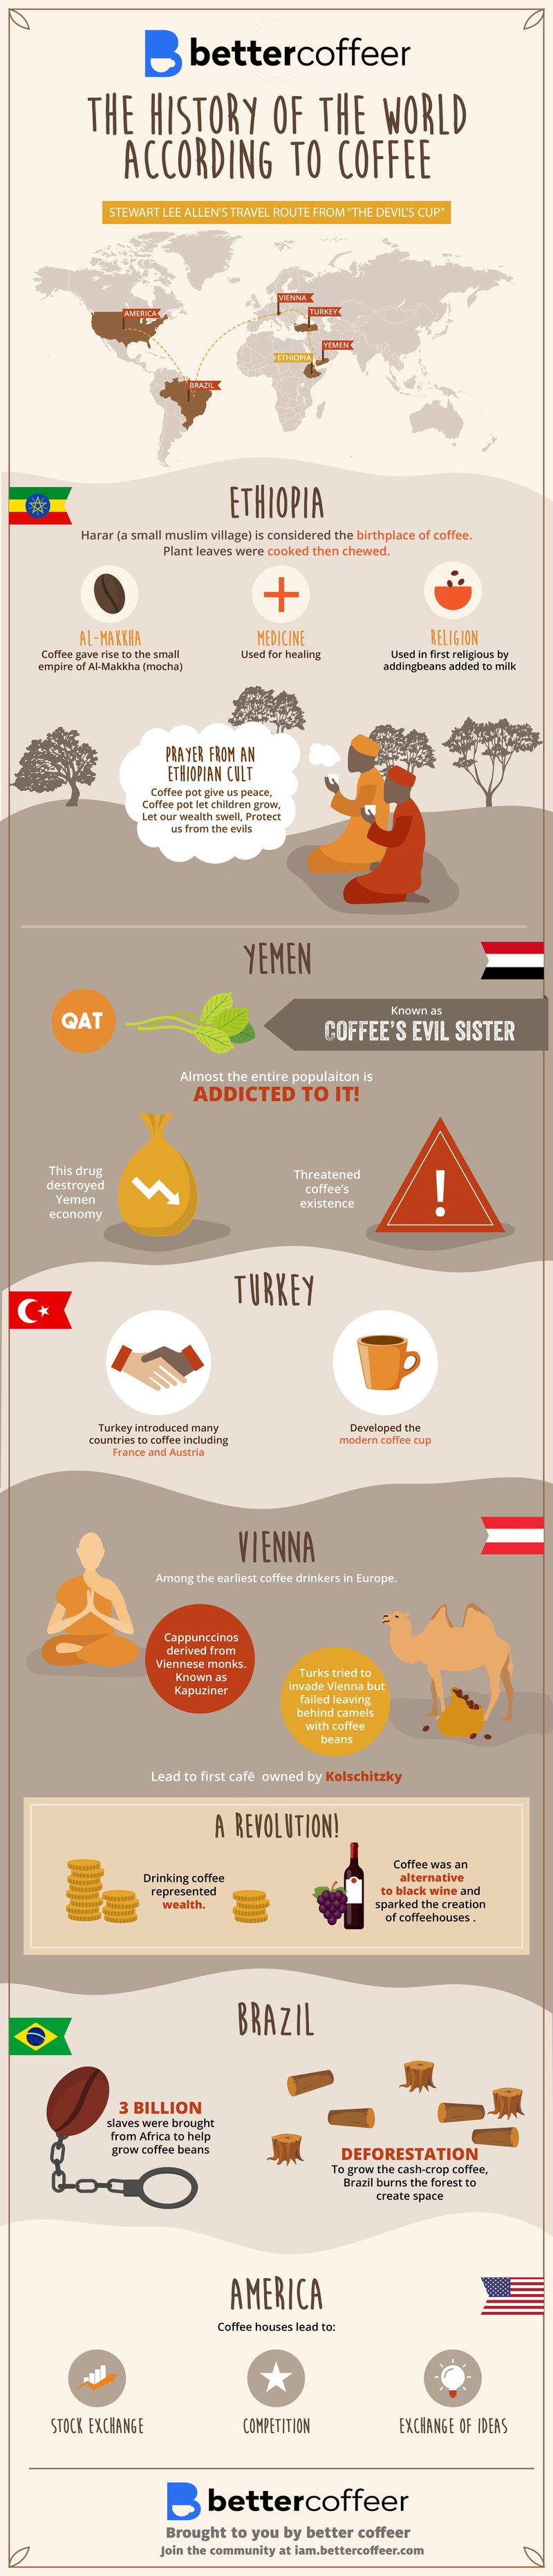 History of the World According to Coffee